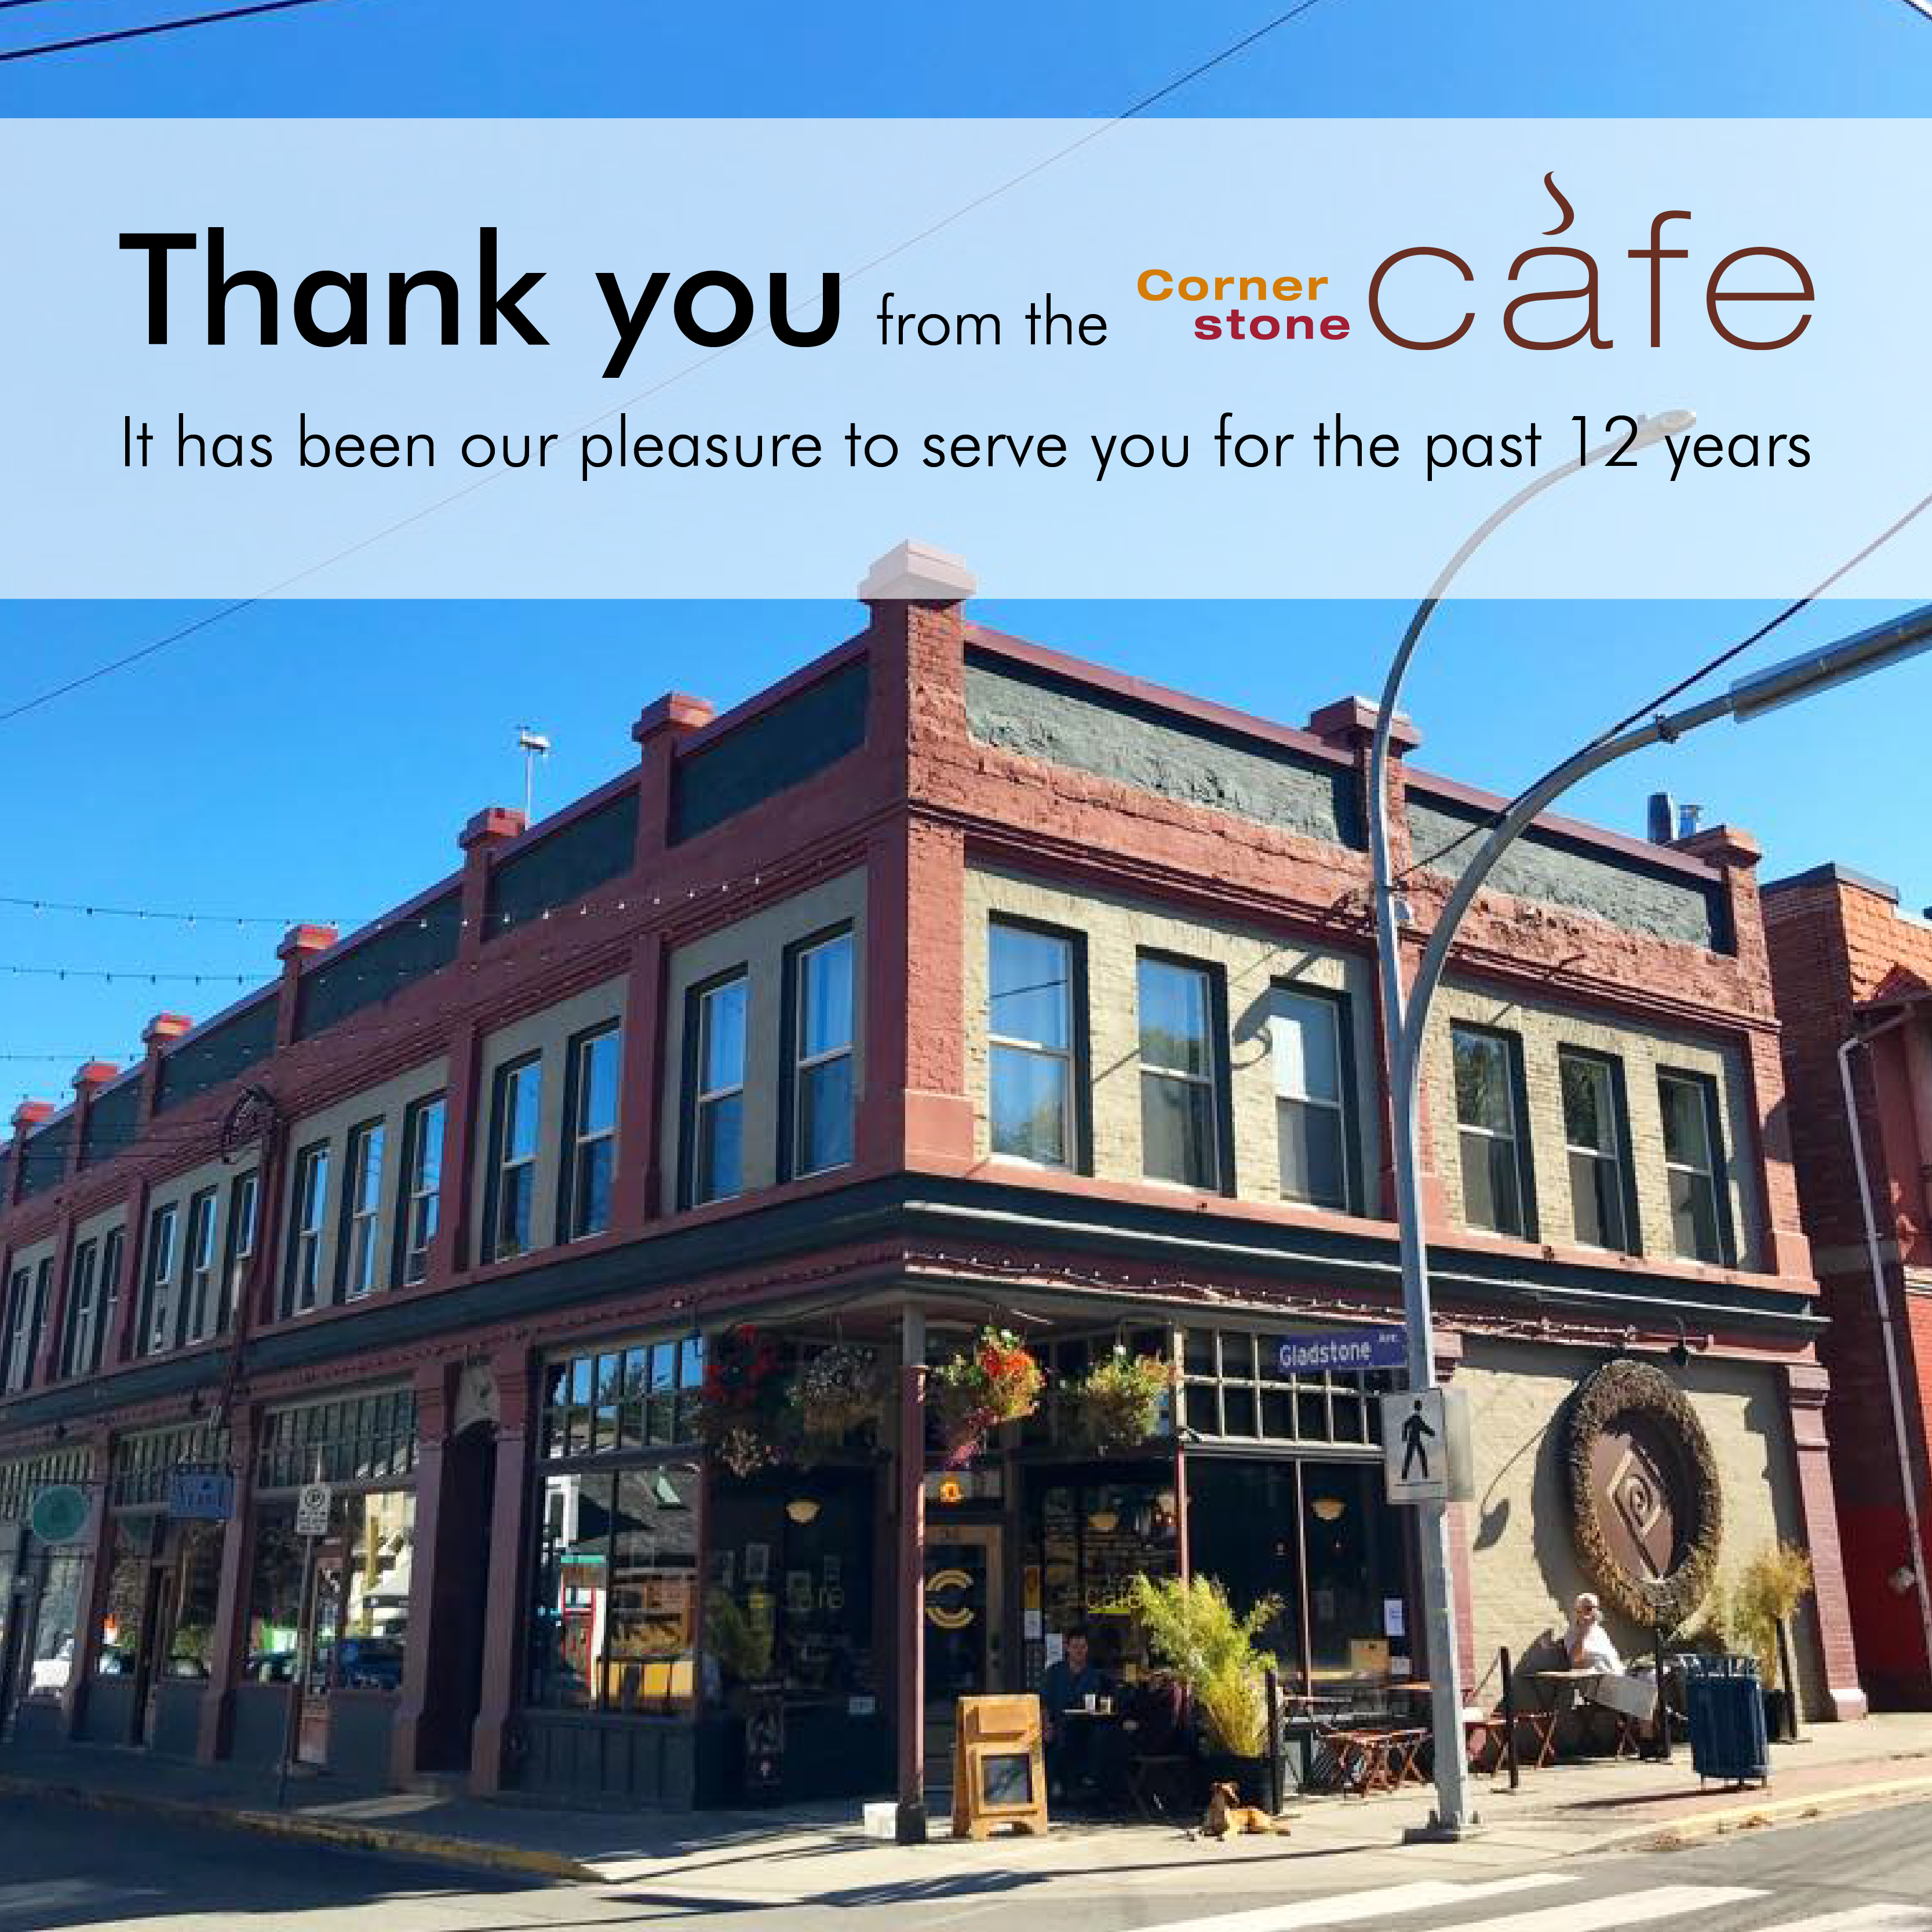 Thank you from the Cornerstone Cafe